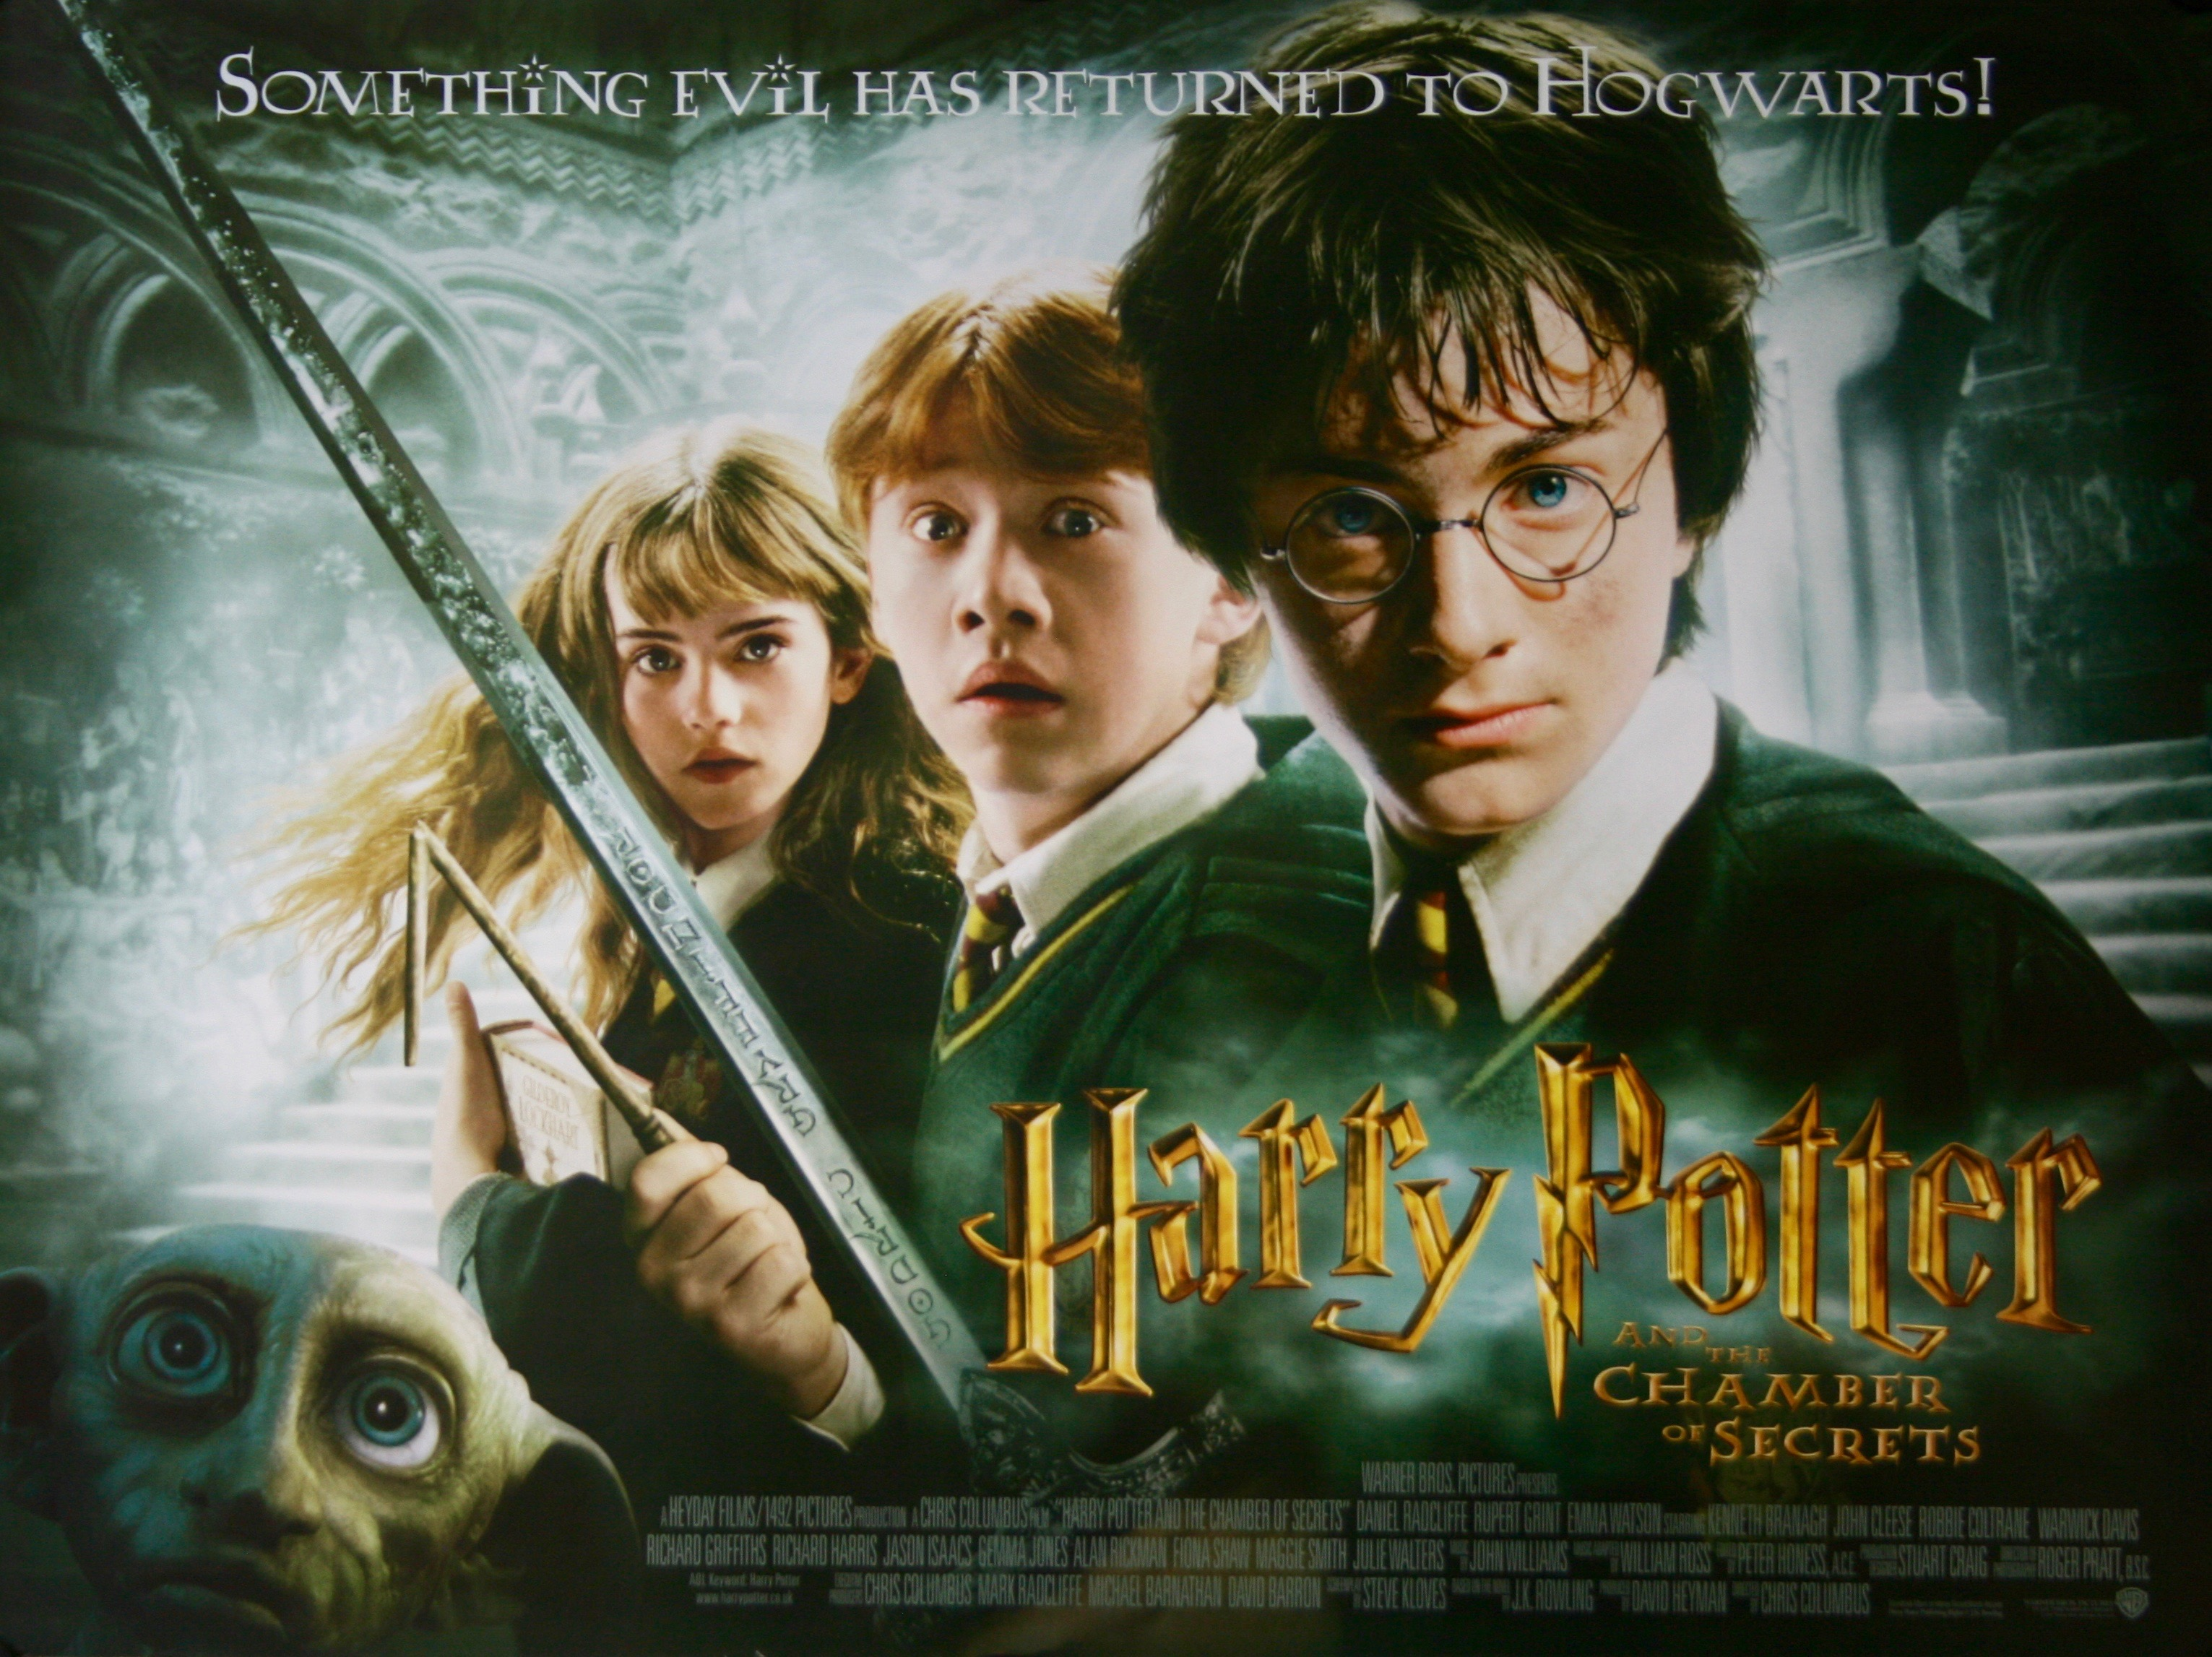 Harry potter and the chamber of secrets movie poster - Harry potter chambre secrets streaming ...